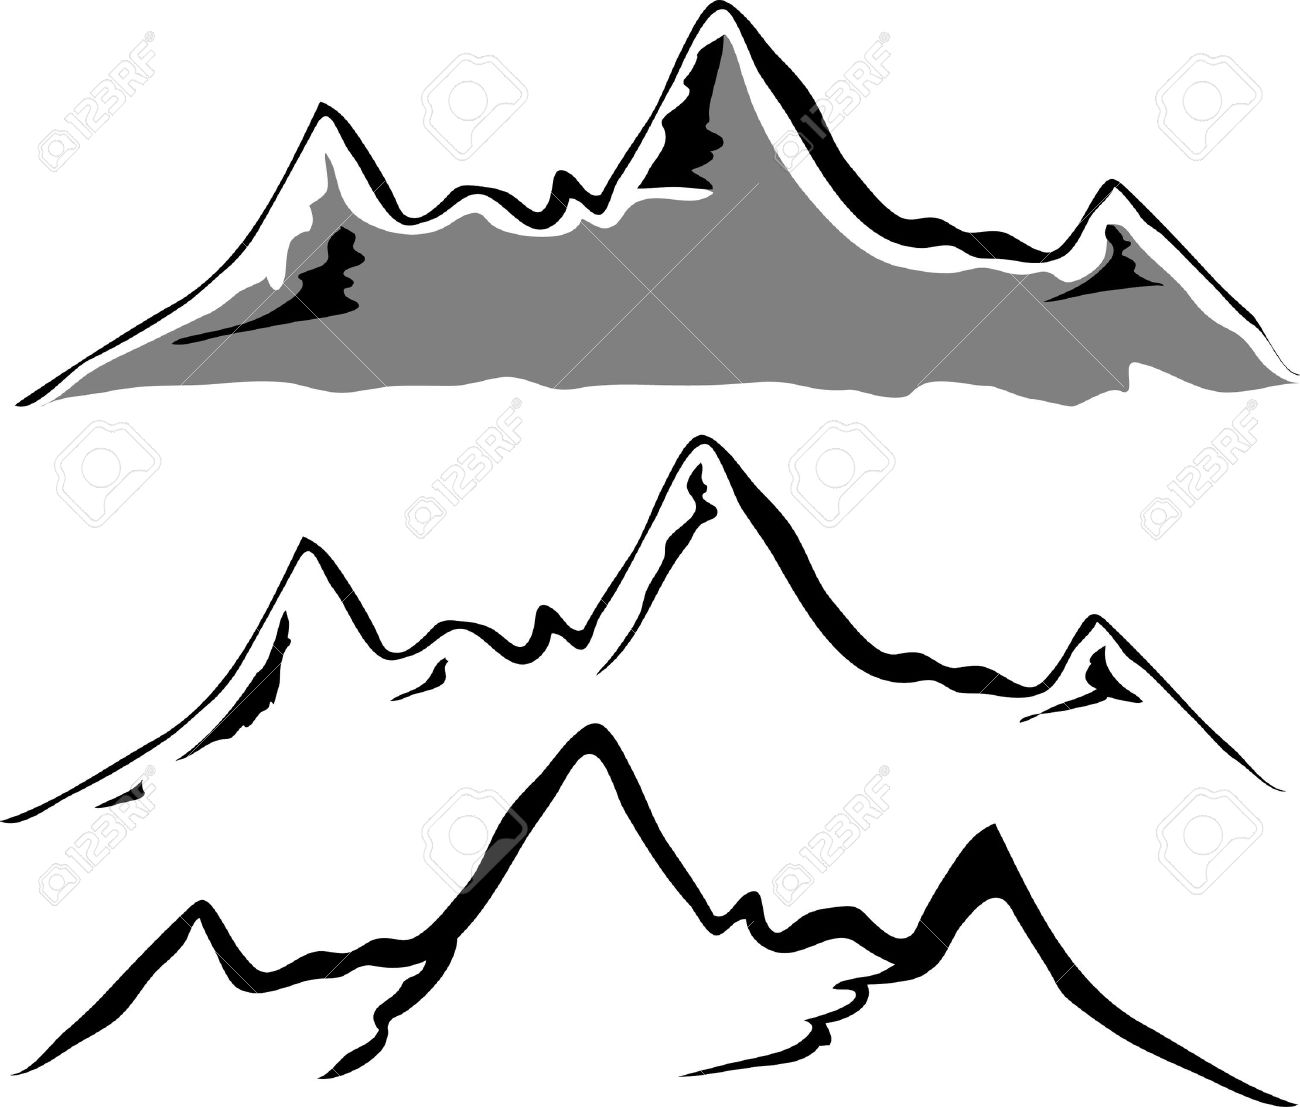 Mountain Silhouette 37,085 mountain silhouette stock vector illustration and royalty